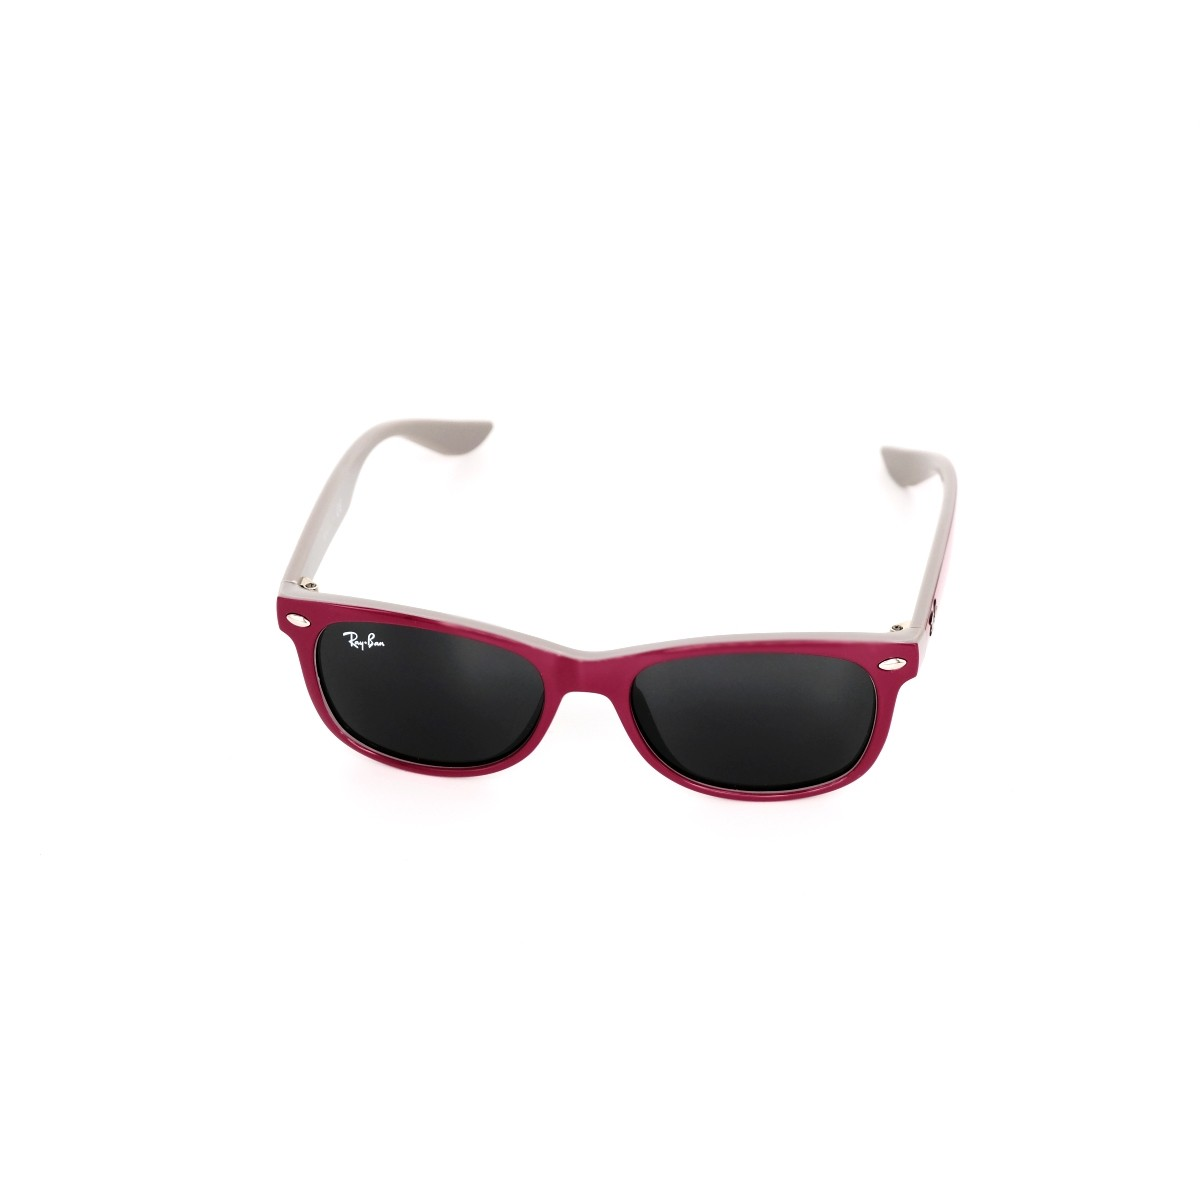 Ray Ban Junior 9052 177/87, 56,00 €, Occhiali Ray Ban Junior Viola a forma Rettangolare